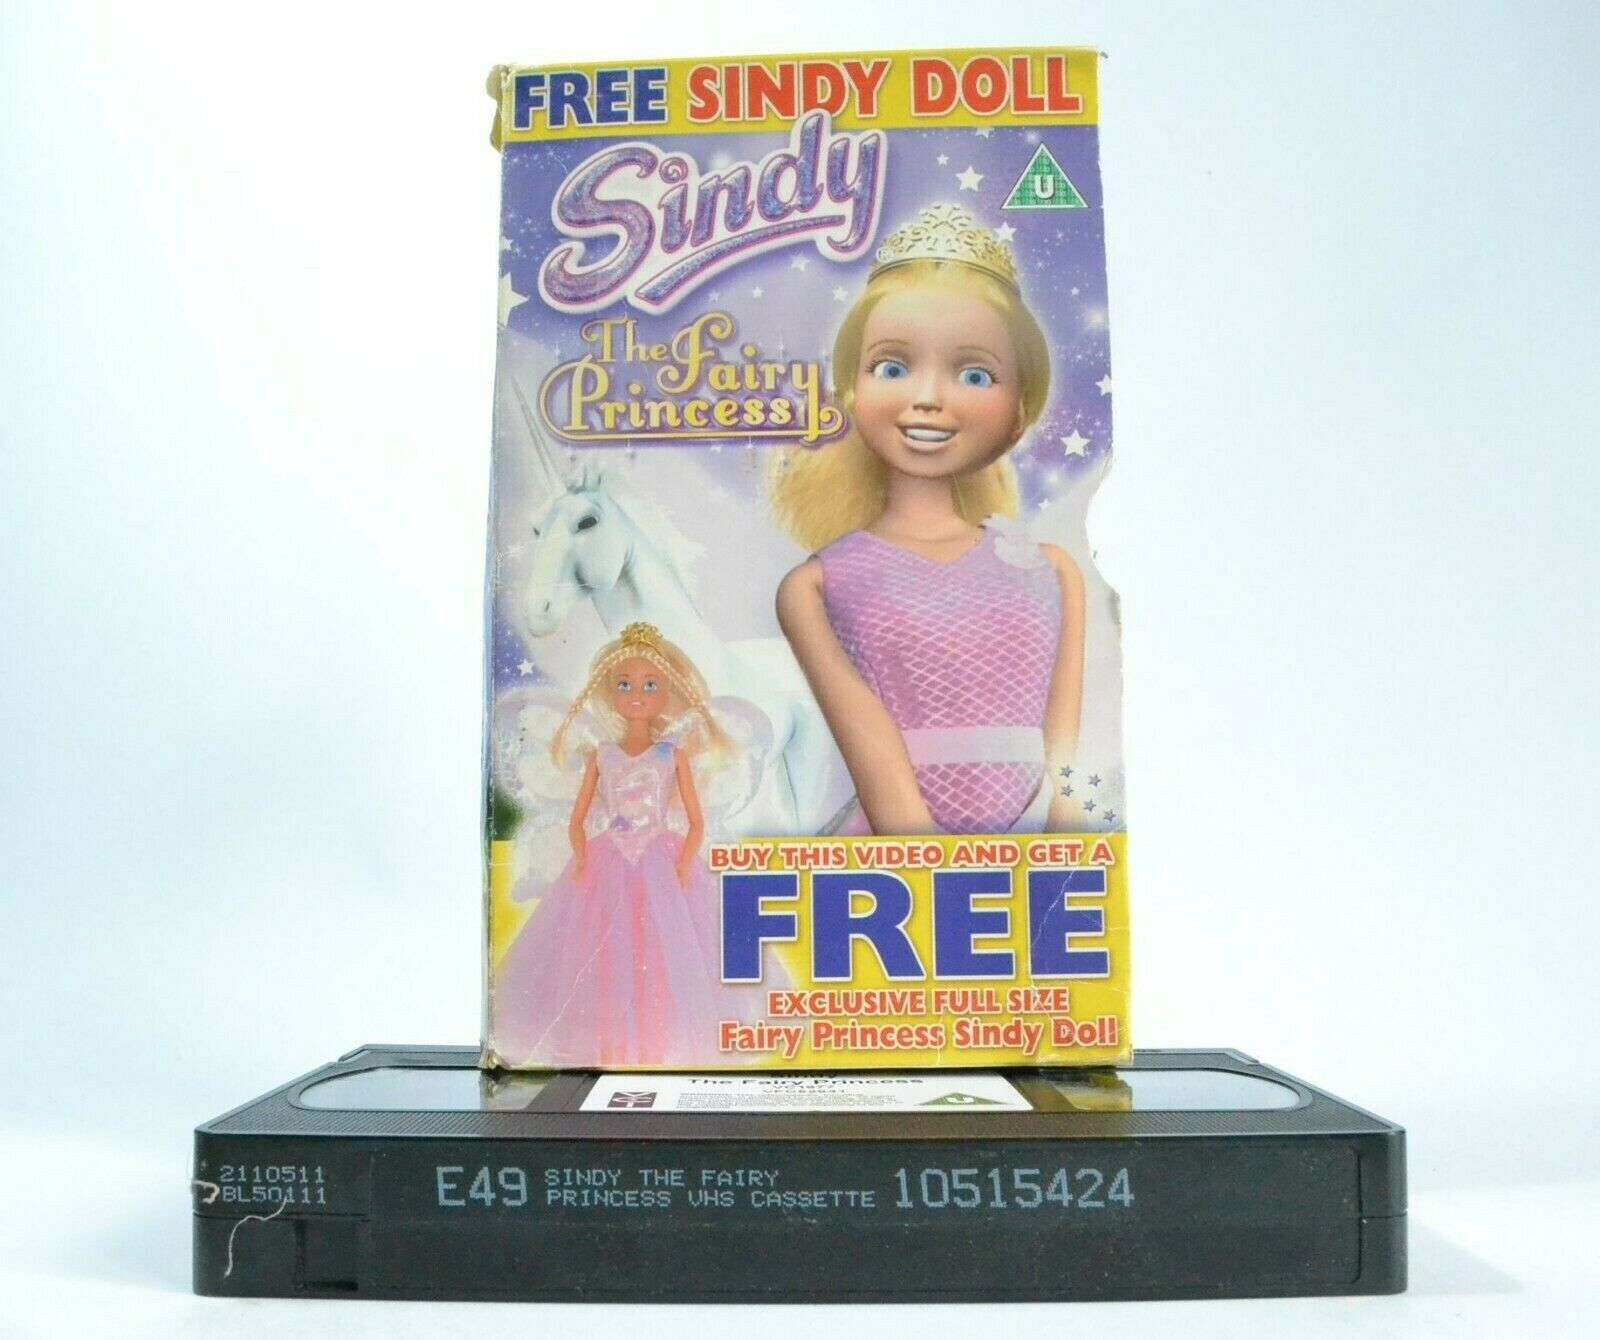 Sindy: The Fairy Princess -< Carton Box >- Animated Fantasy - Children's - VHS